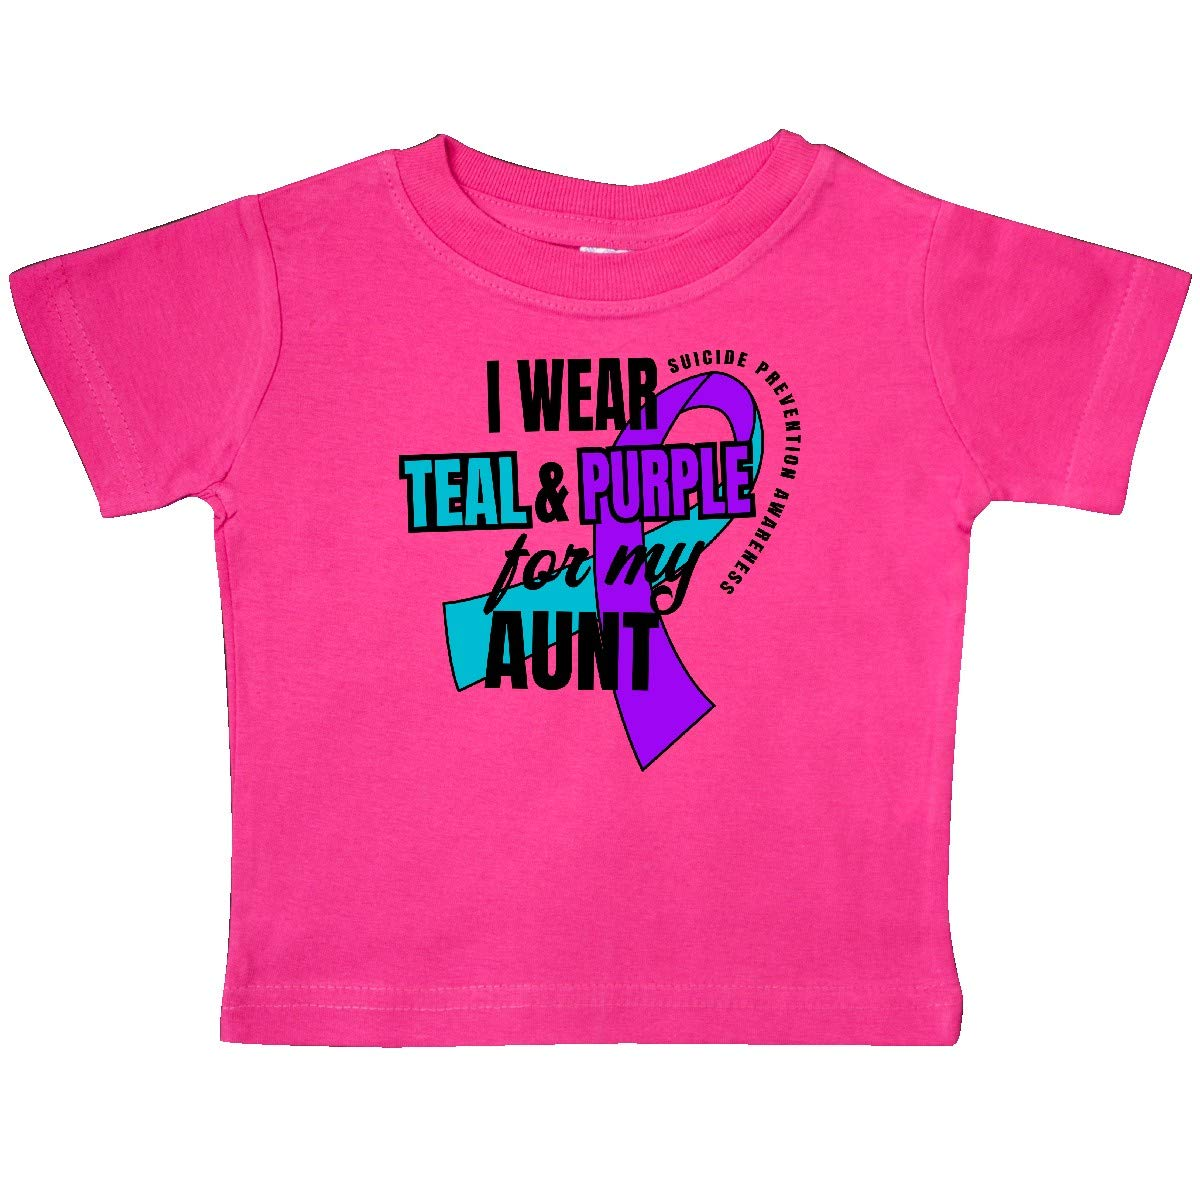 inktastic Suicide Prevention I Wear Teal and Purple for My Aunt Baby T-Shirt